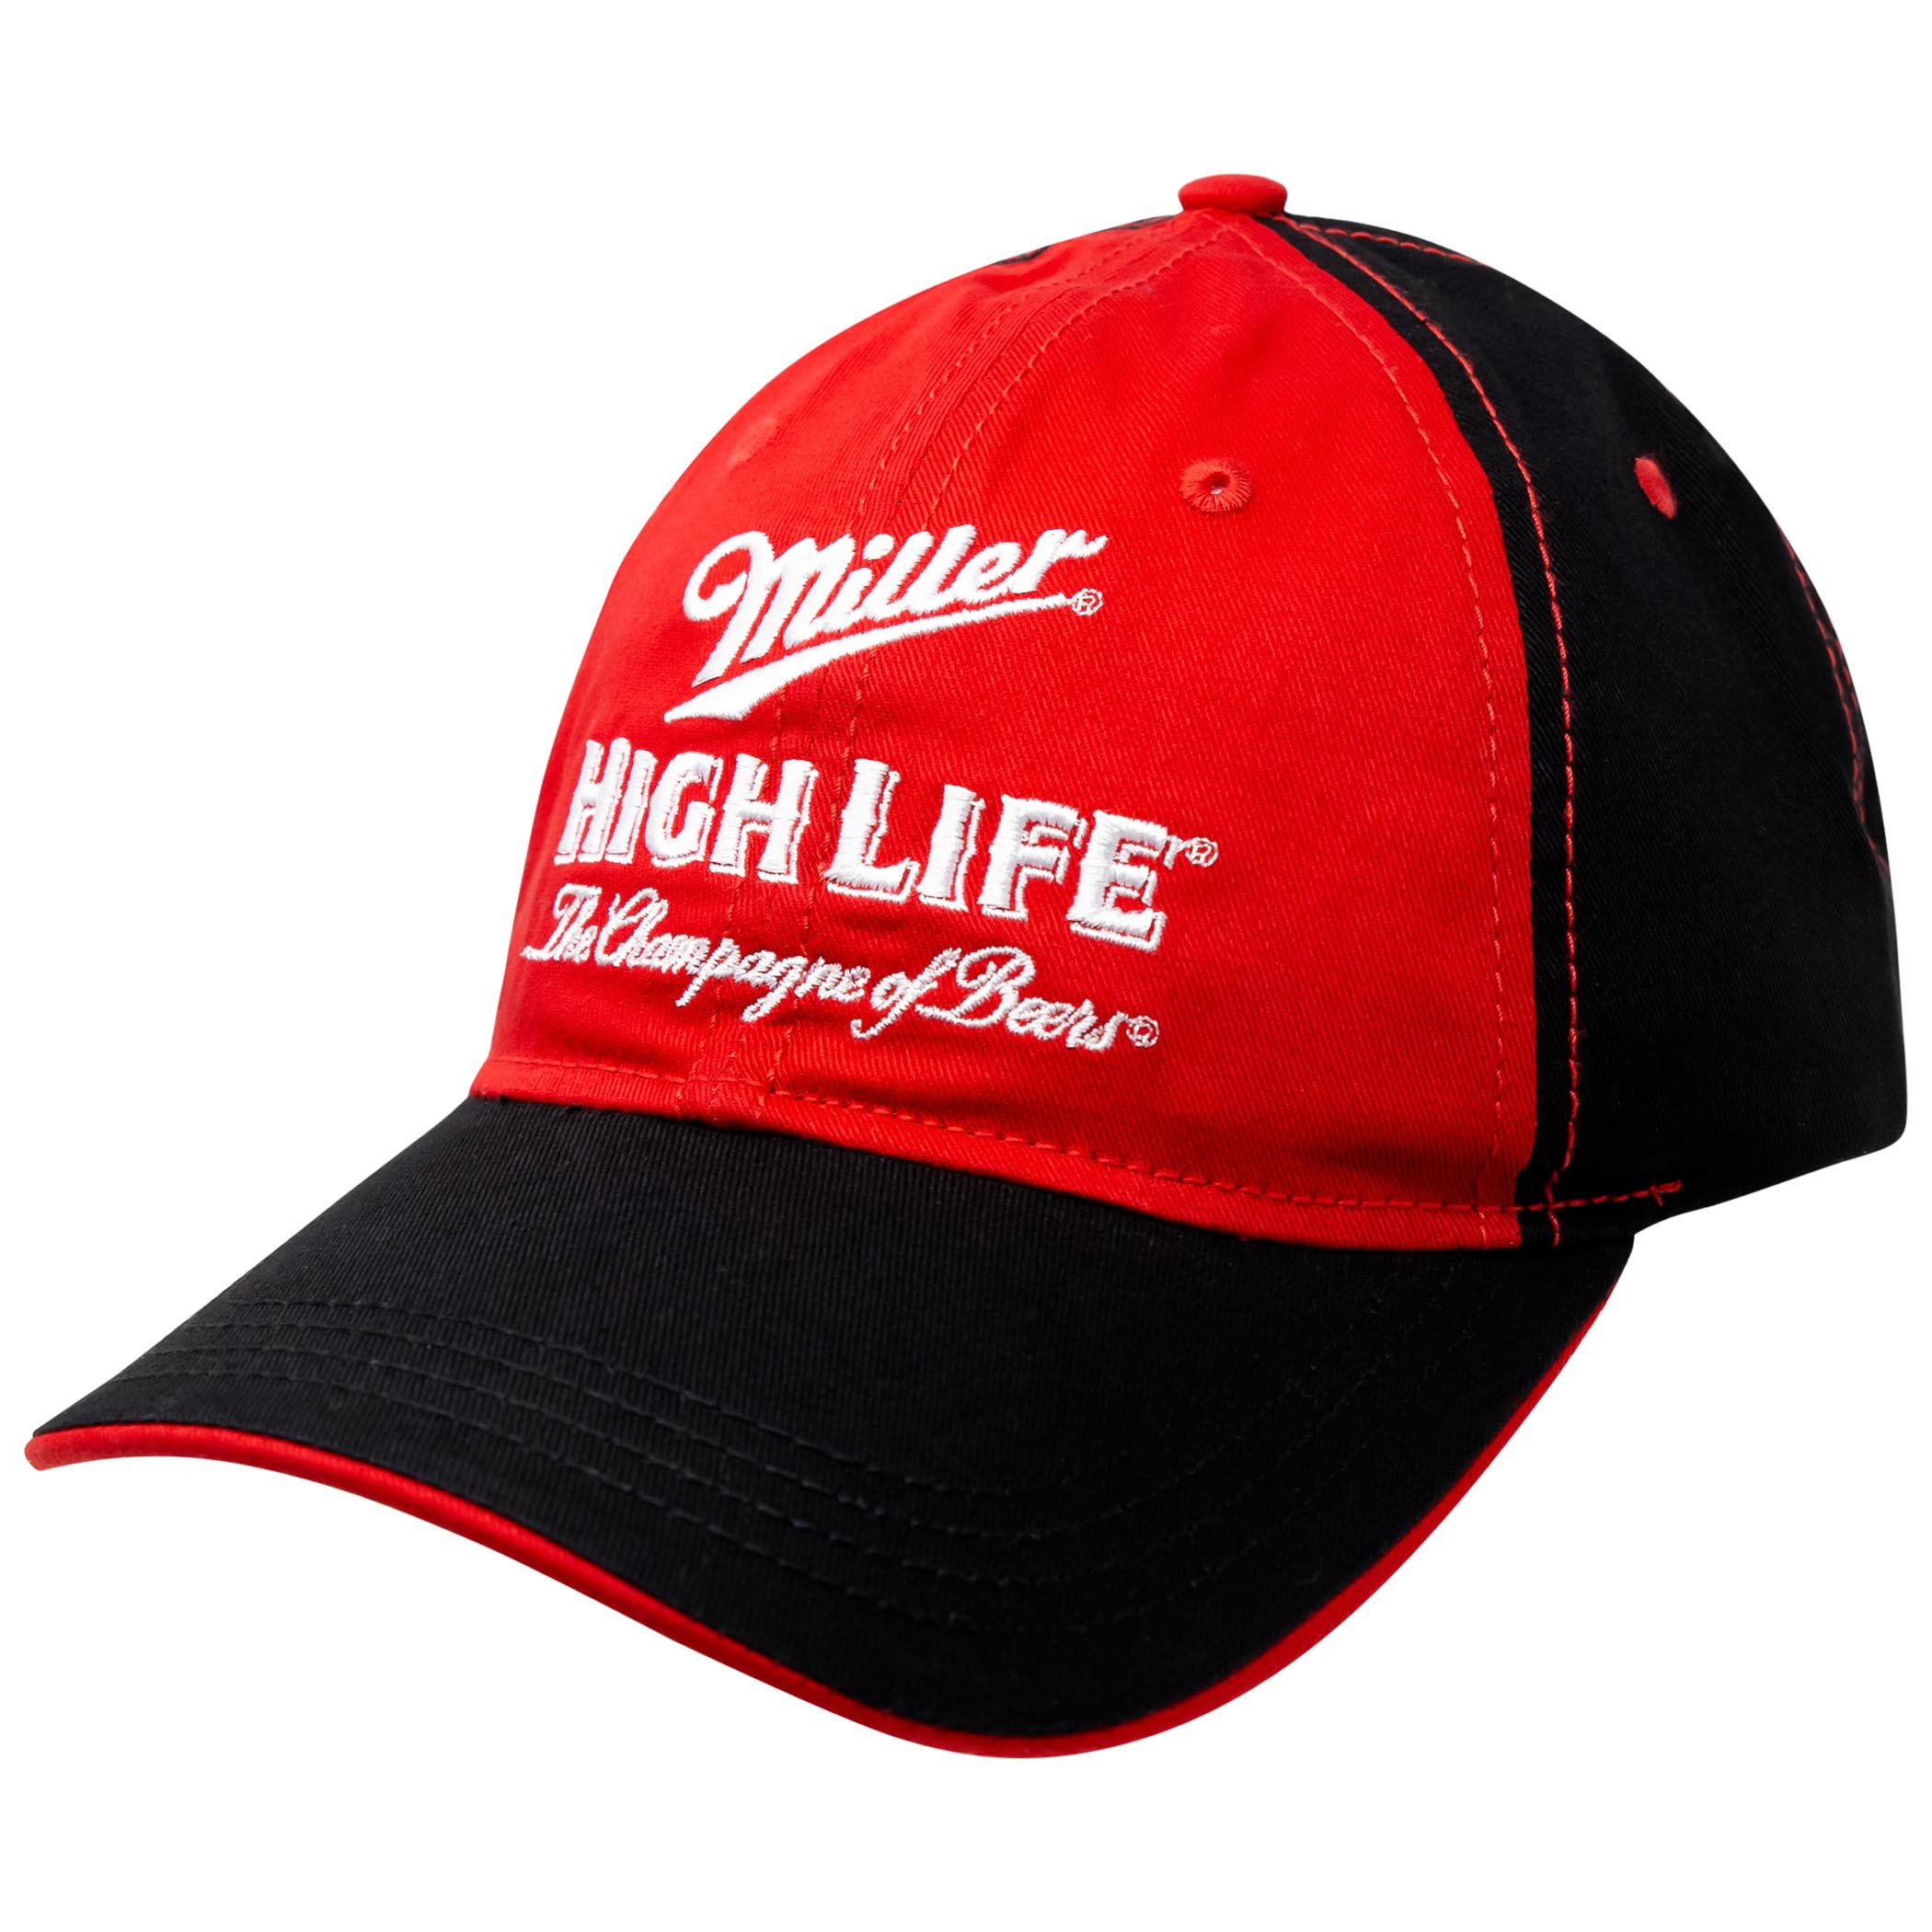 Miller High Life Beer Black And Red Fitted Hat